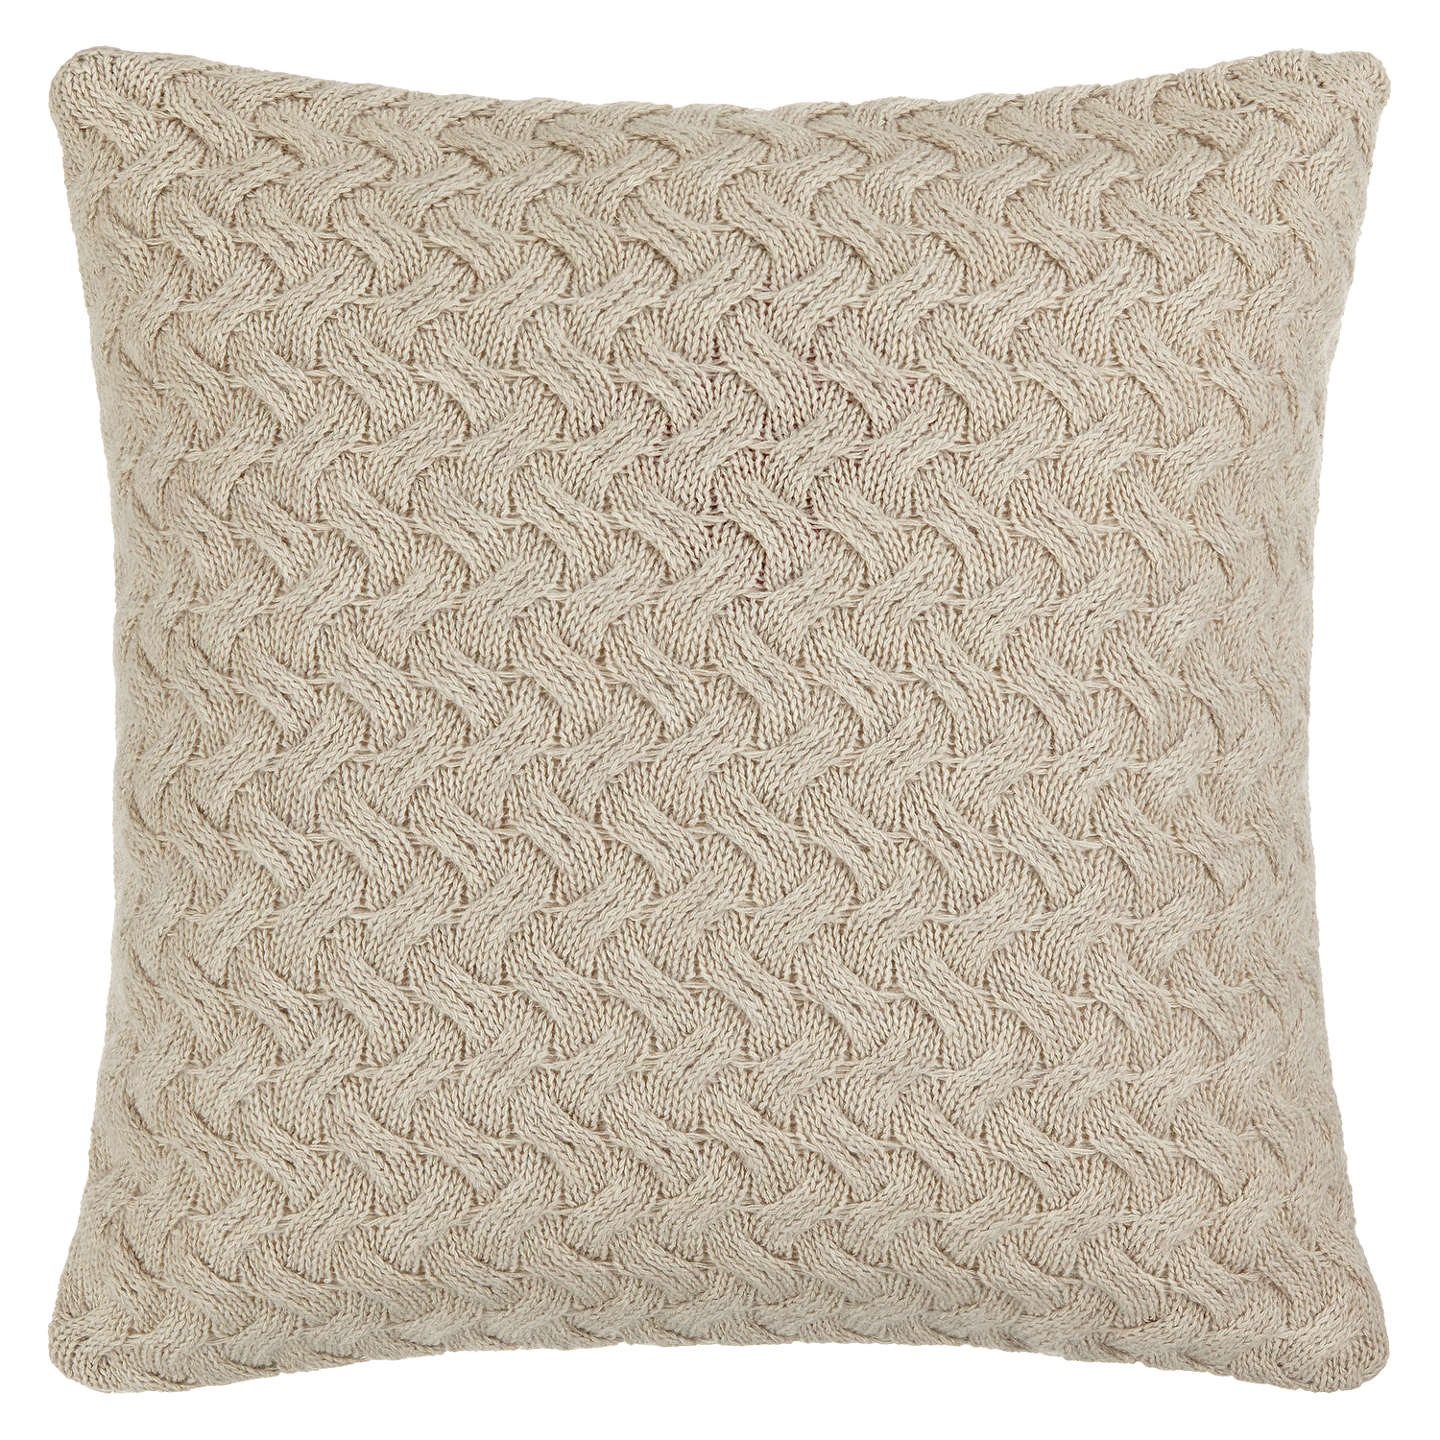 BuyCroft Collection Knitted Waves Cushion, Putty Online at johnlewis.com